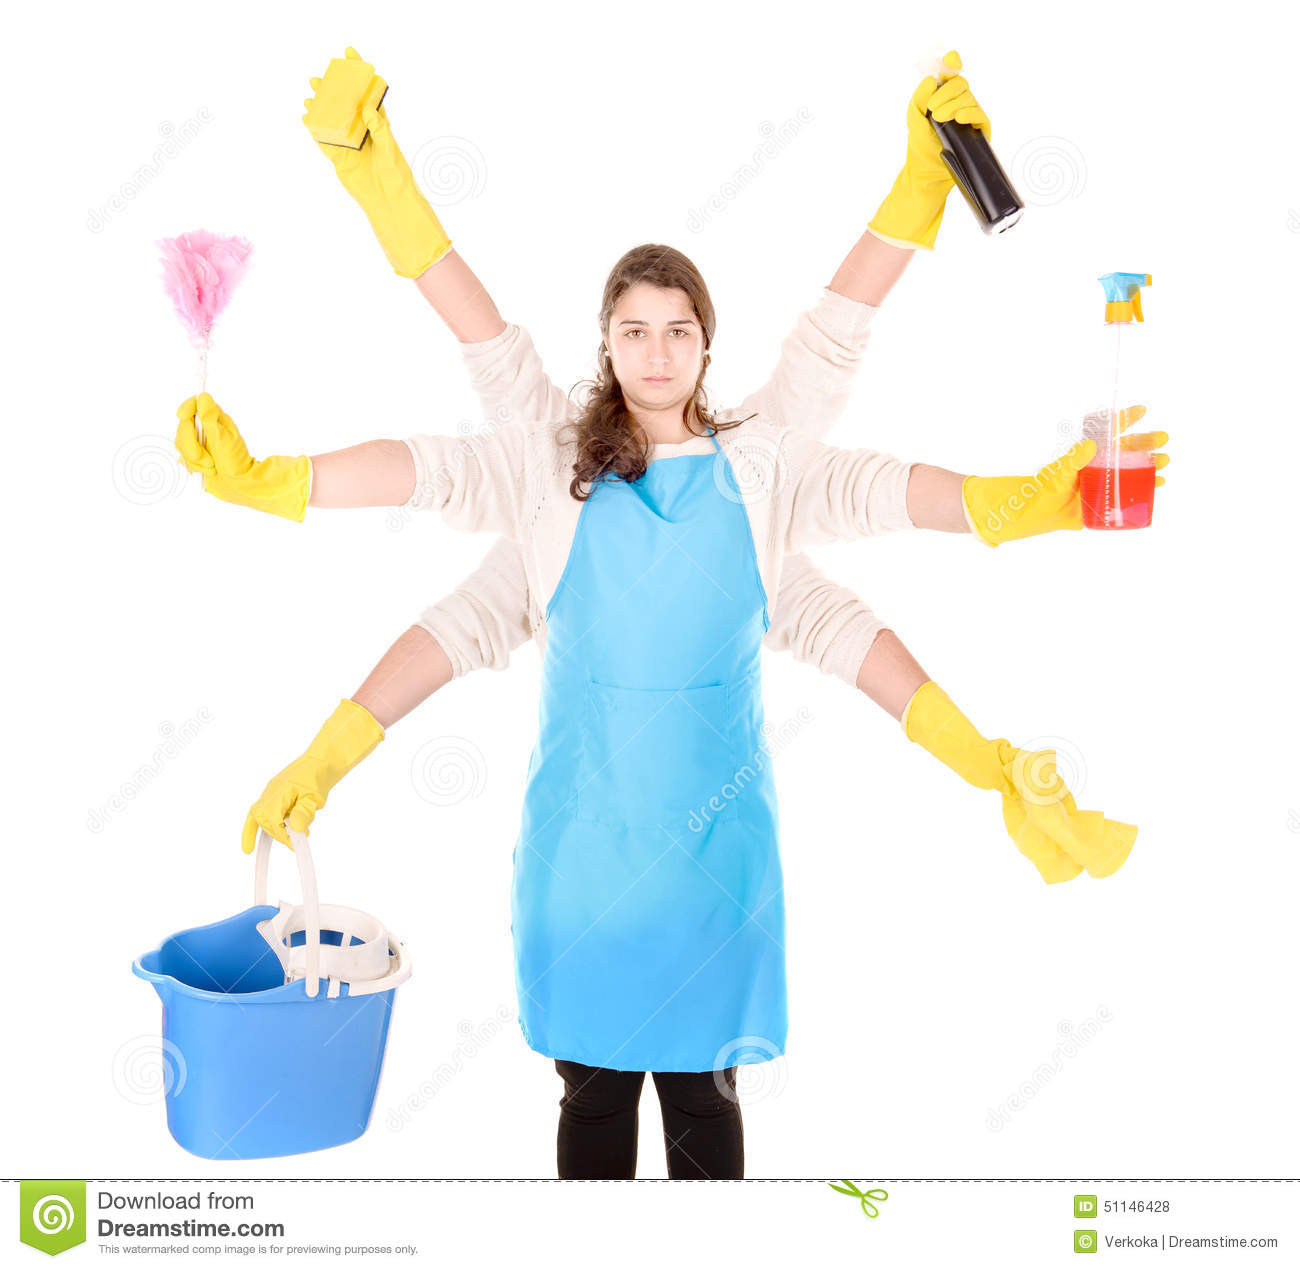 cleaning-lady-isolated-white-background-51146428.jpg